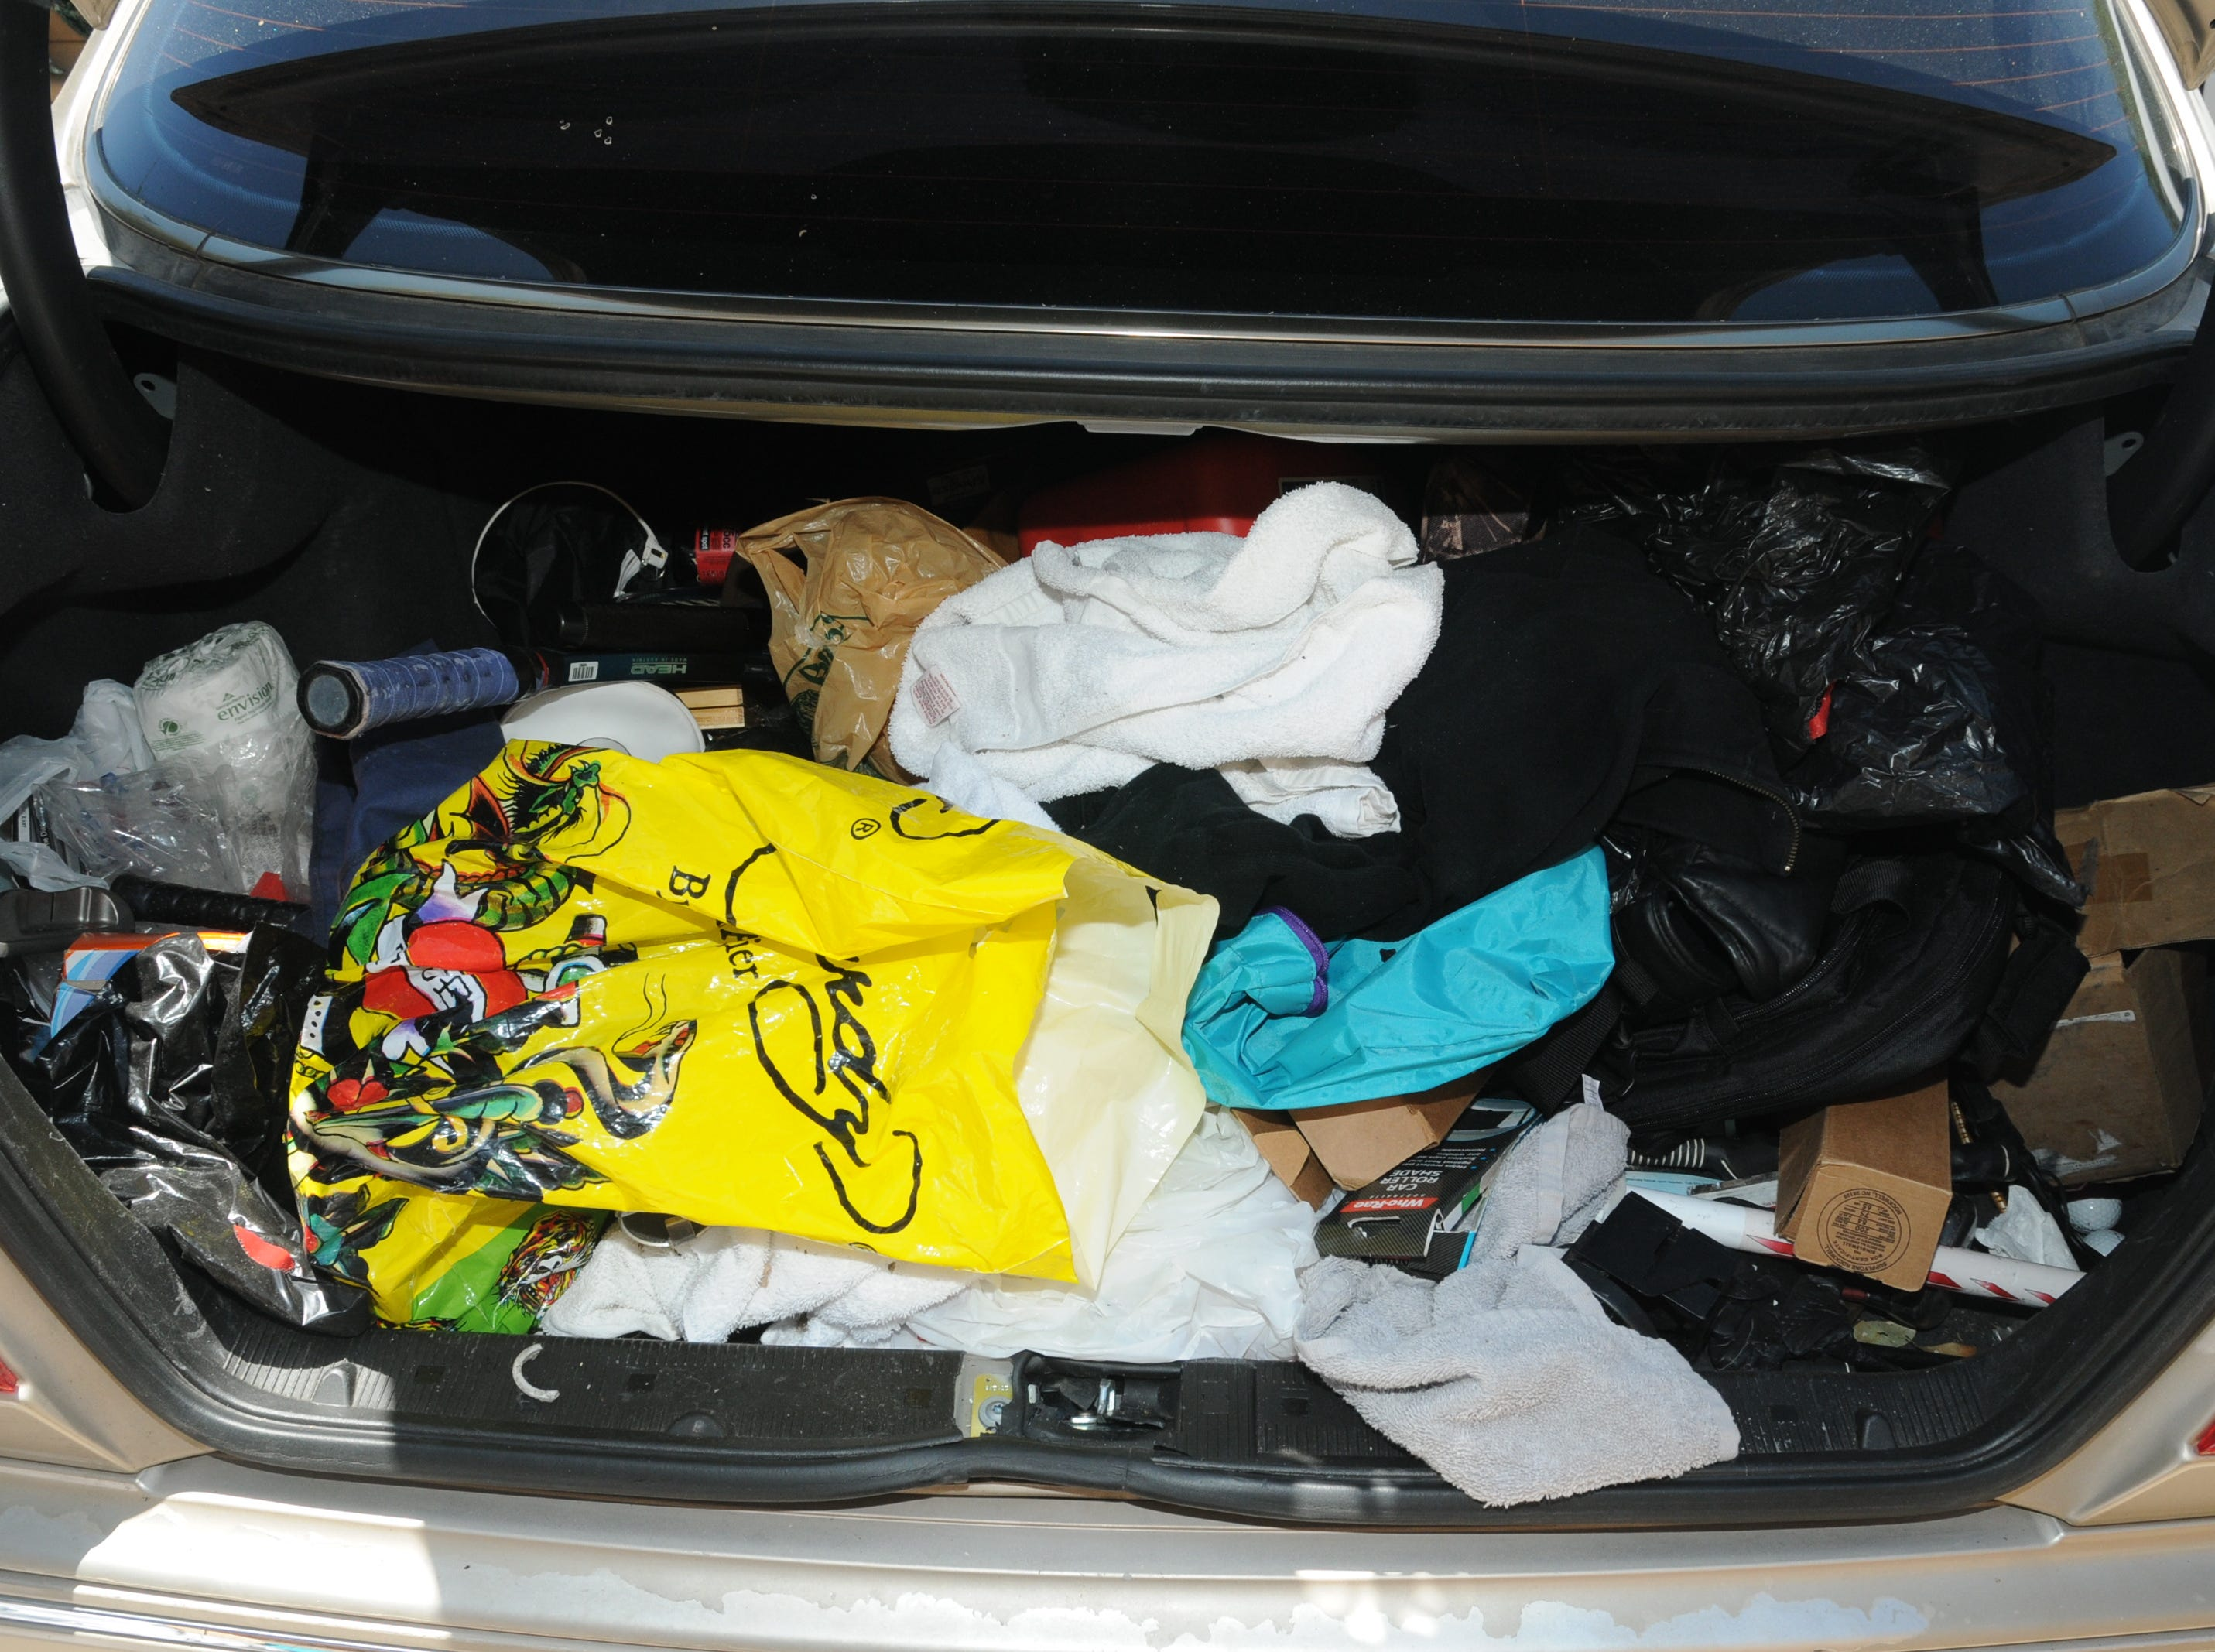 Scottsdale Police Department photo showing the contents inside the trunk of Dwight Lamon Jones' car.  After a bitter divorce and failed years-long custody battle for his son, Jones went on a four-day shooting spree from May 31 to June 3, 2018, that left six people dead, before taking his own life.